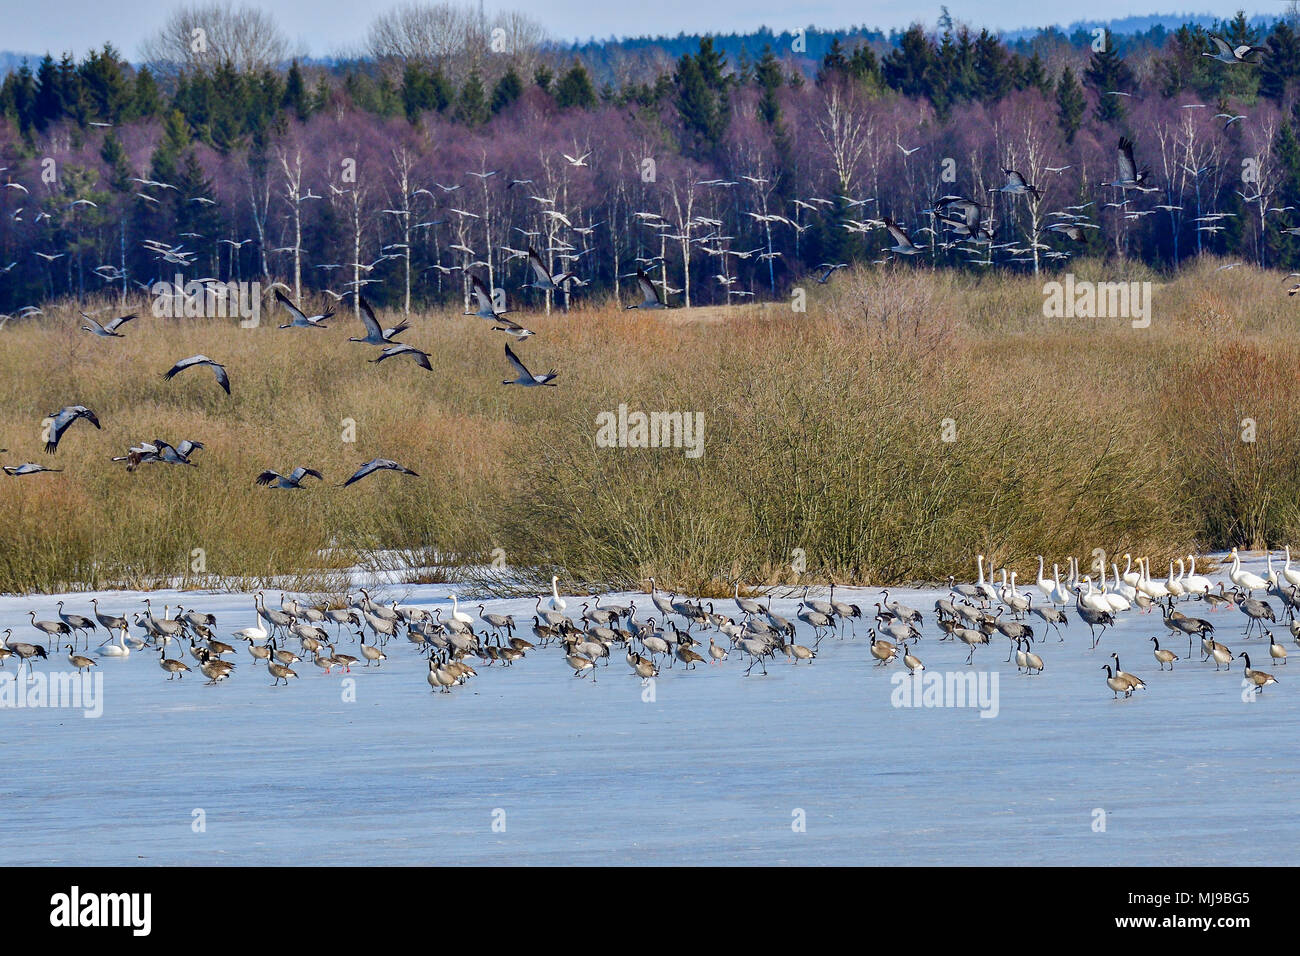 This happens when migration gathering gets disrupted. Those who wont fly away marches to the frozen lake. - Stock Image